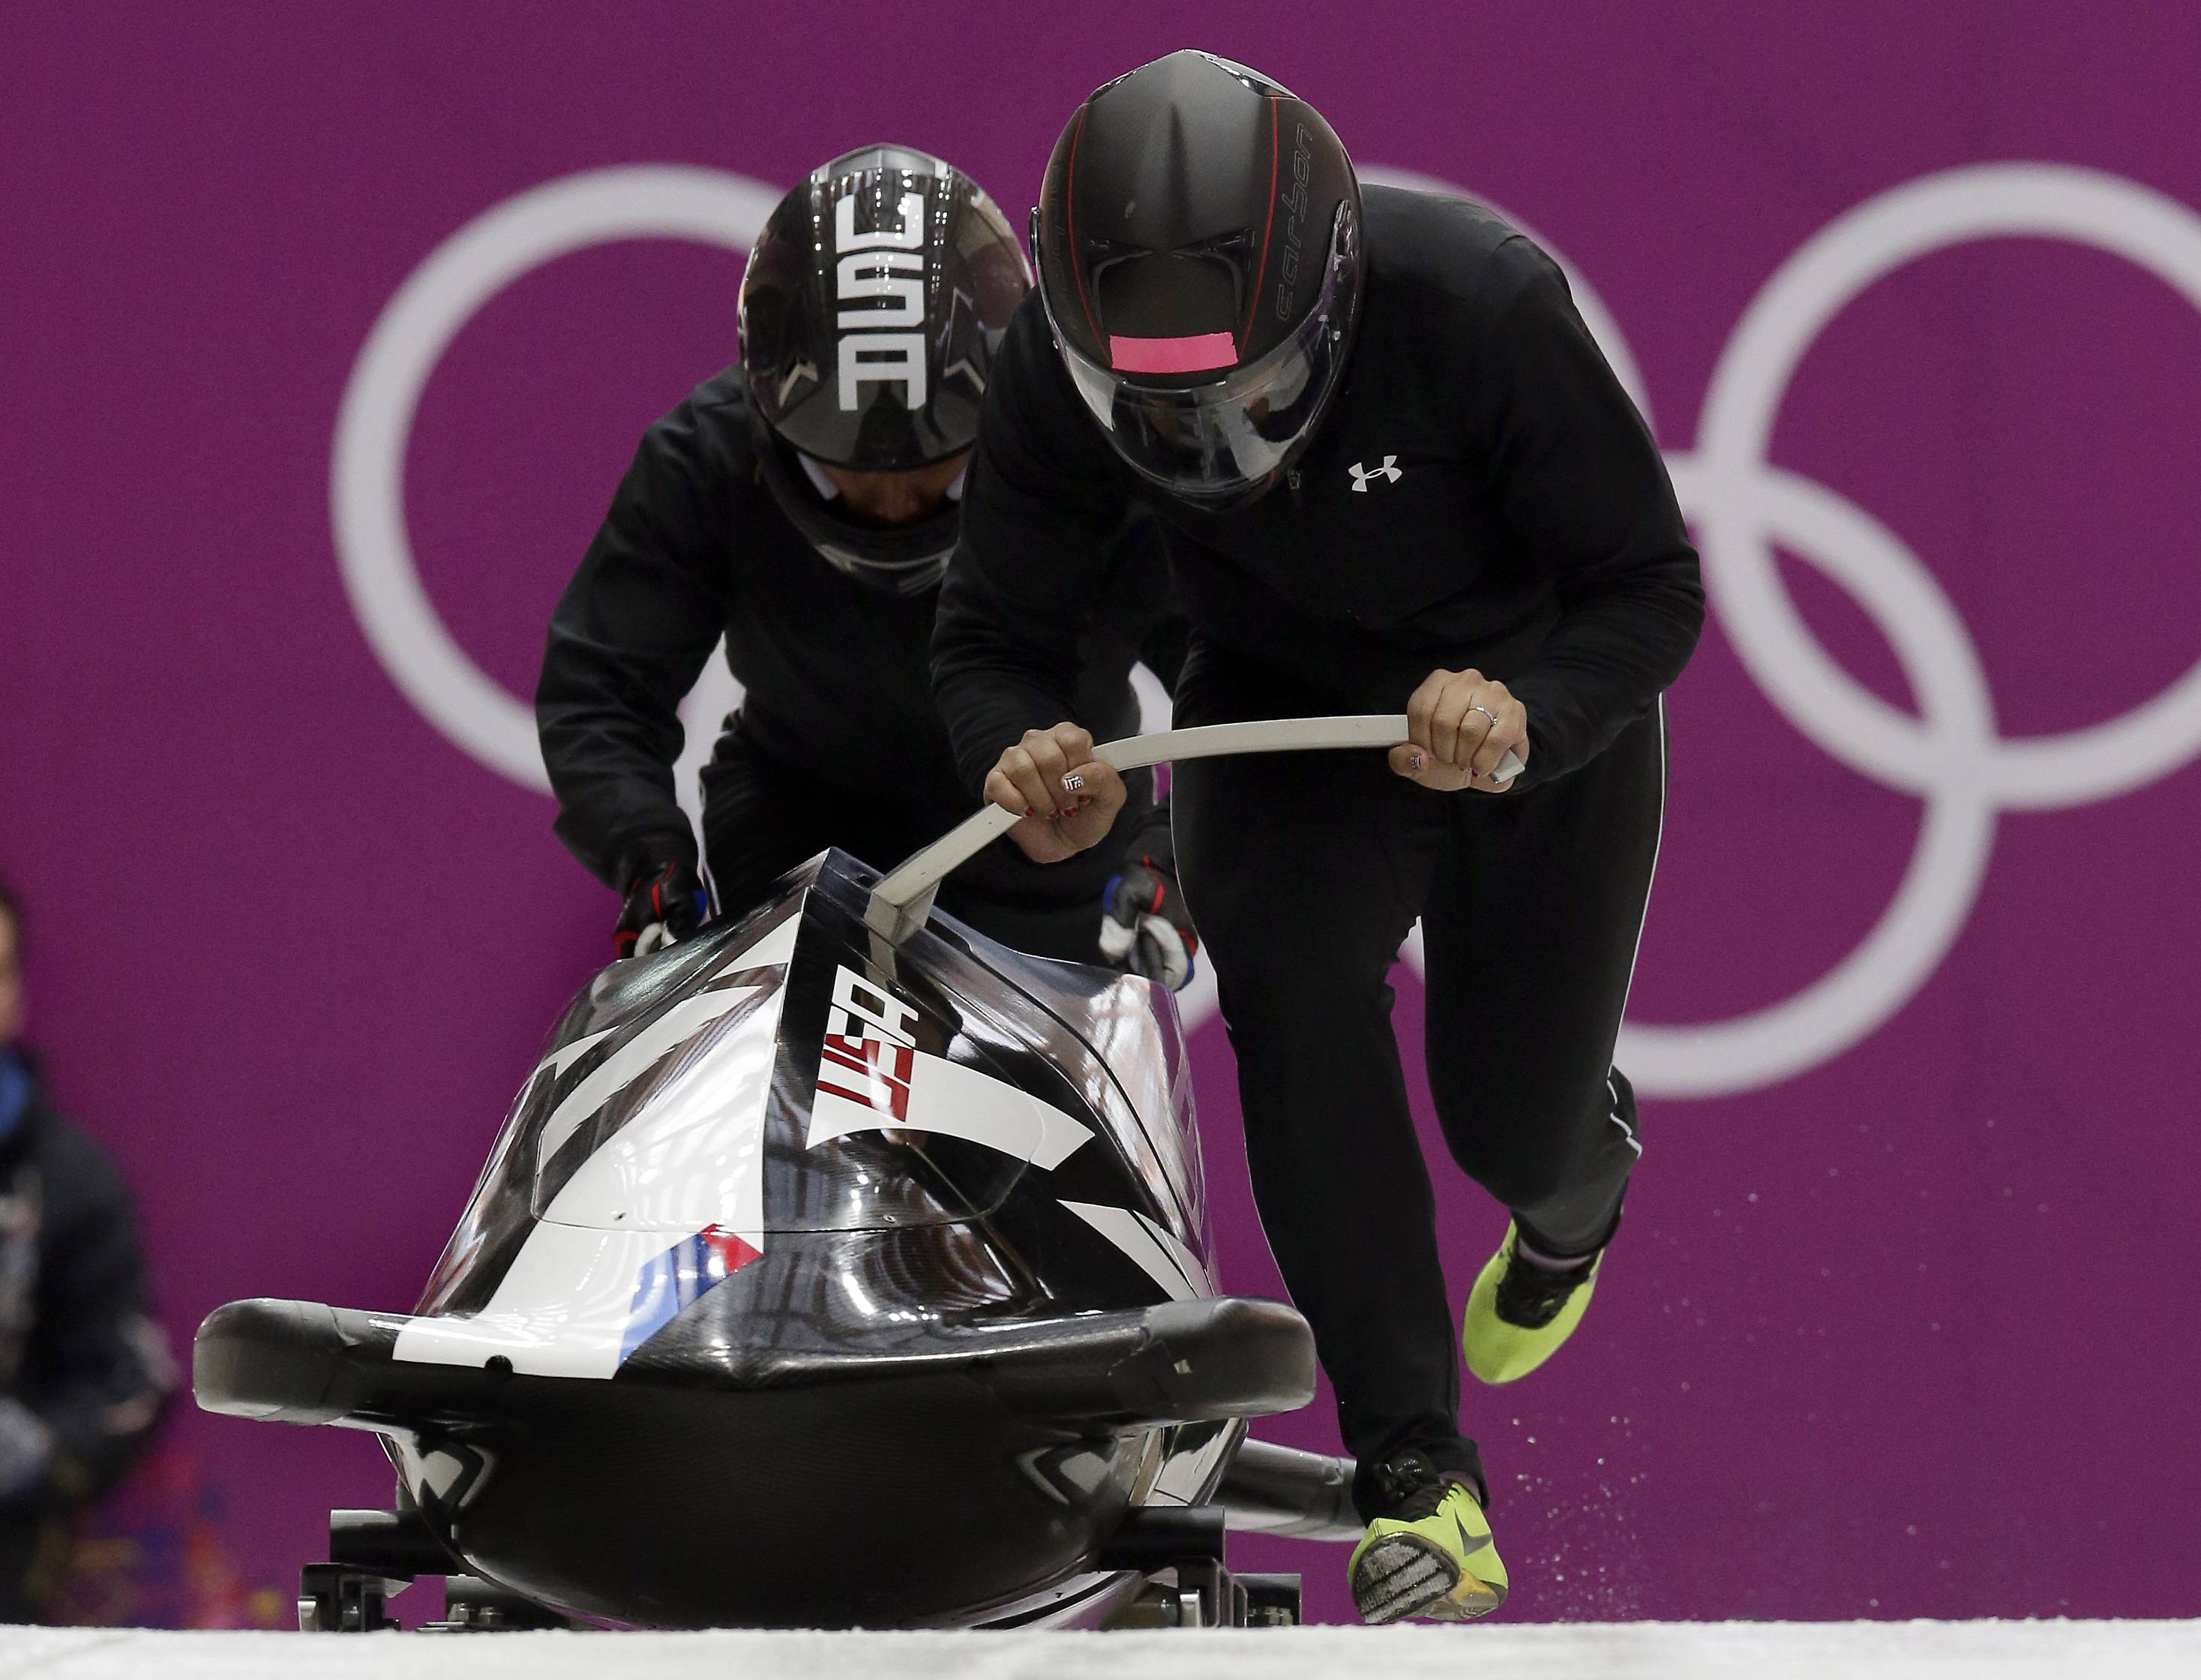 Elena Meyers, right, and Lauryn Williams of the United States start for a training session for the women's bobsled at the 2014 Winter Olympics, Sunday, Feb. 16, 2014, in Krasnaya Polyana, Russia.